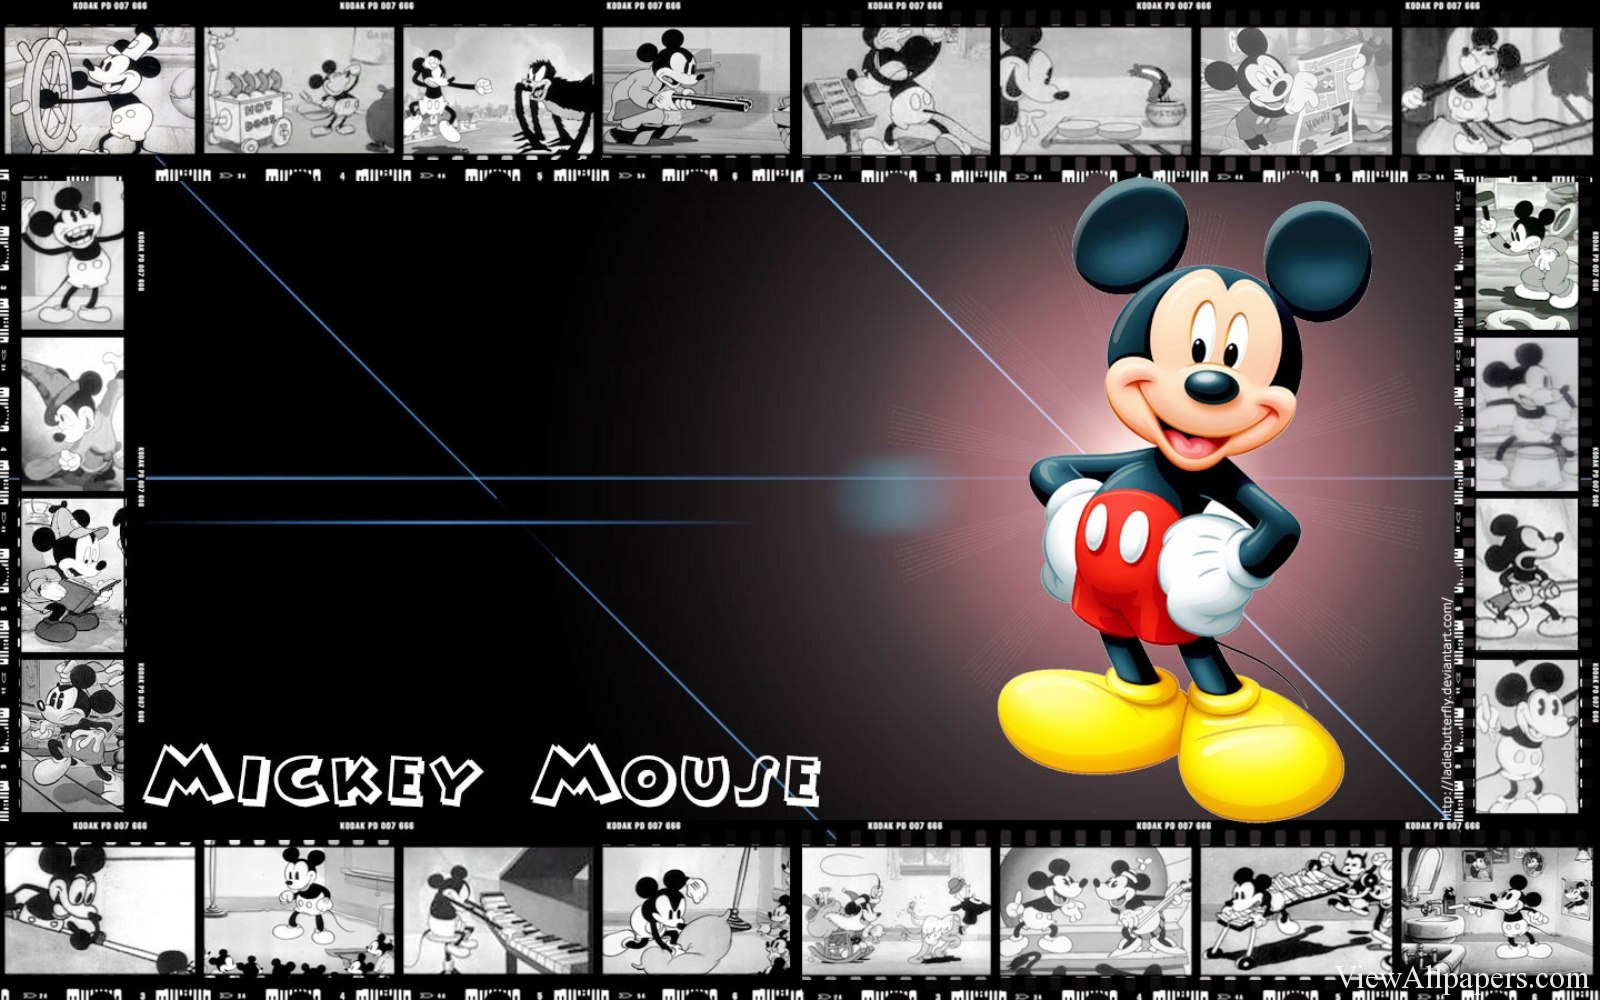 Mickey mouse 1st movie